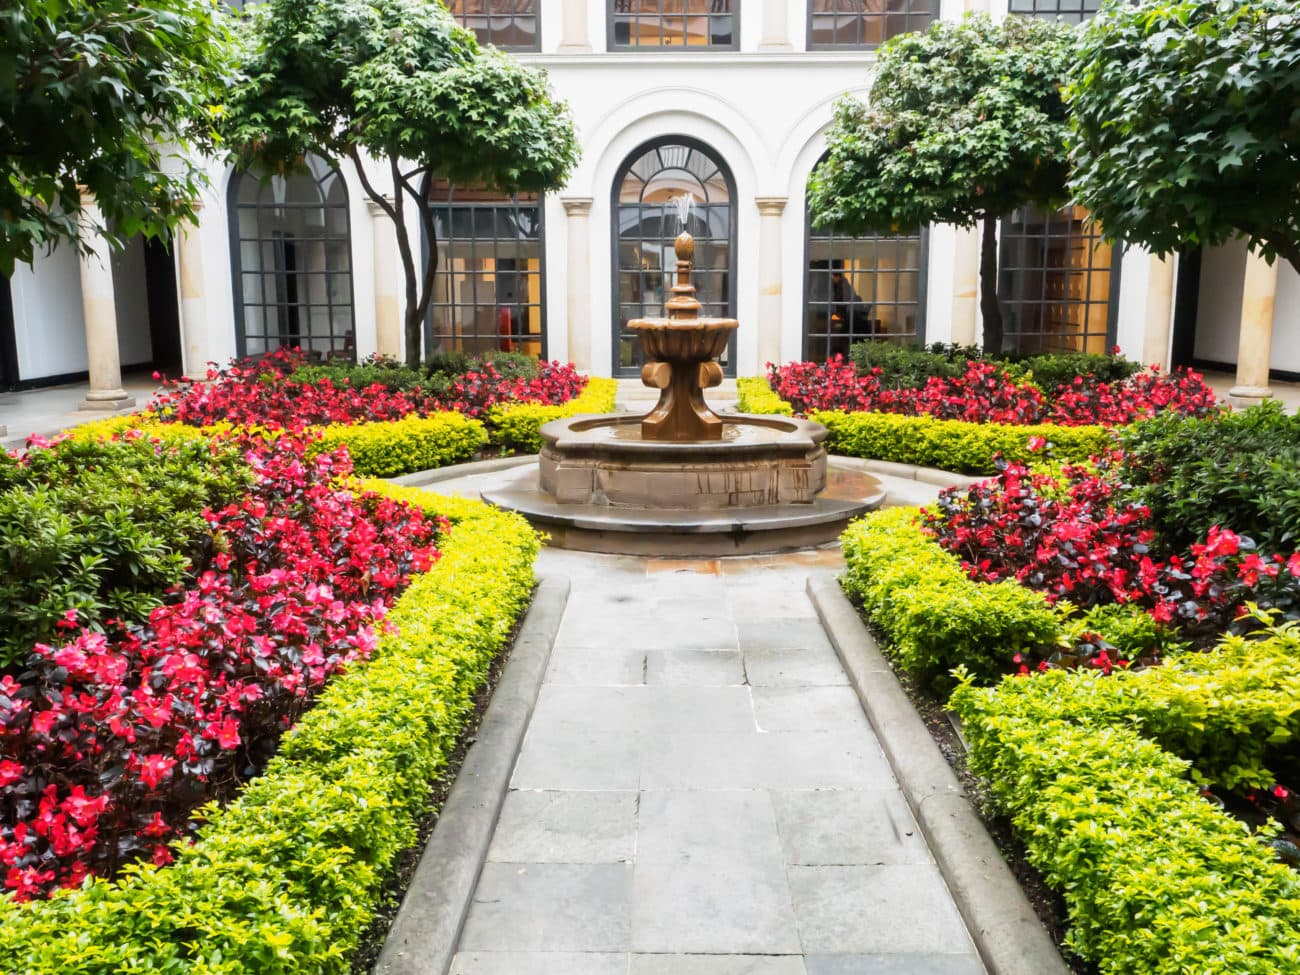 Courtyard of the Botero Museum, with white arches and a fountain